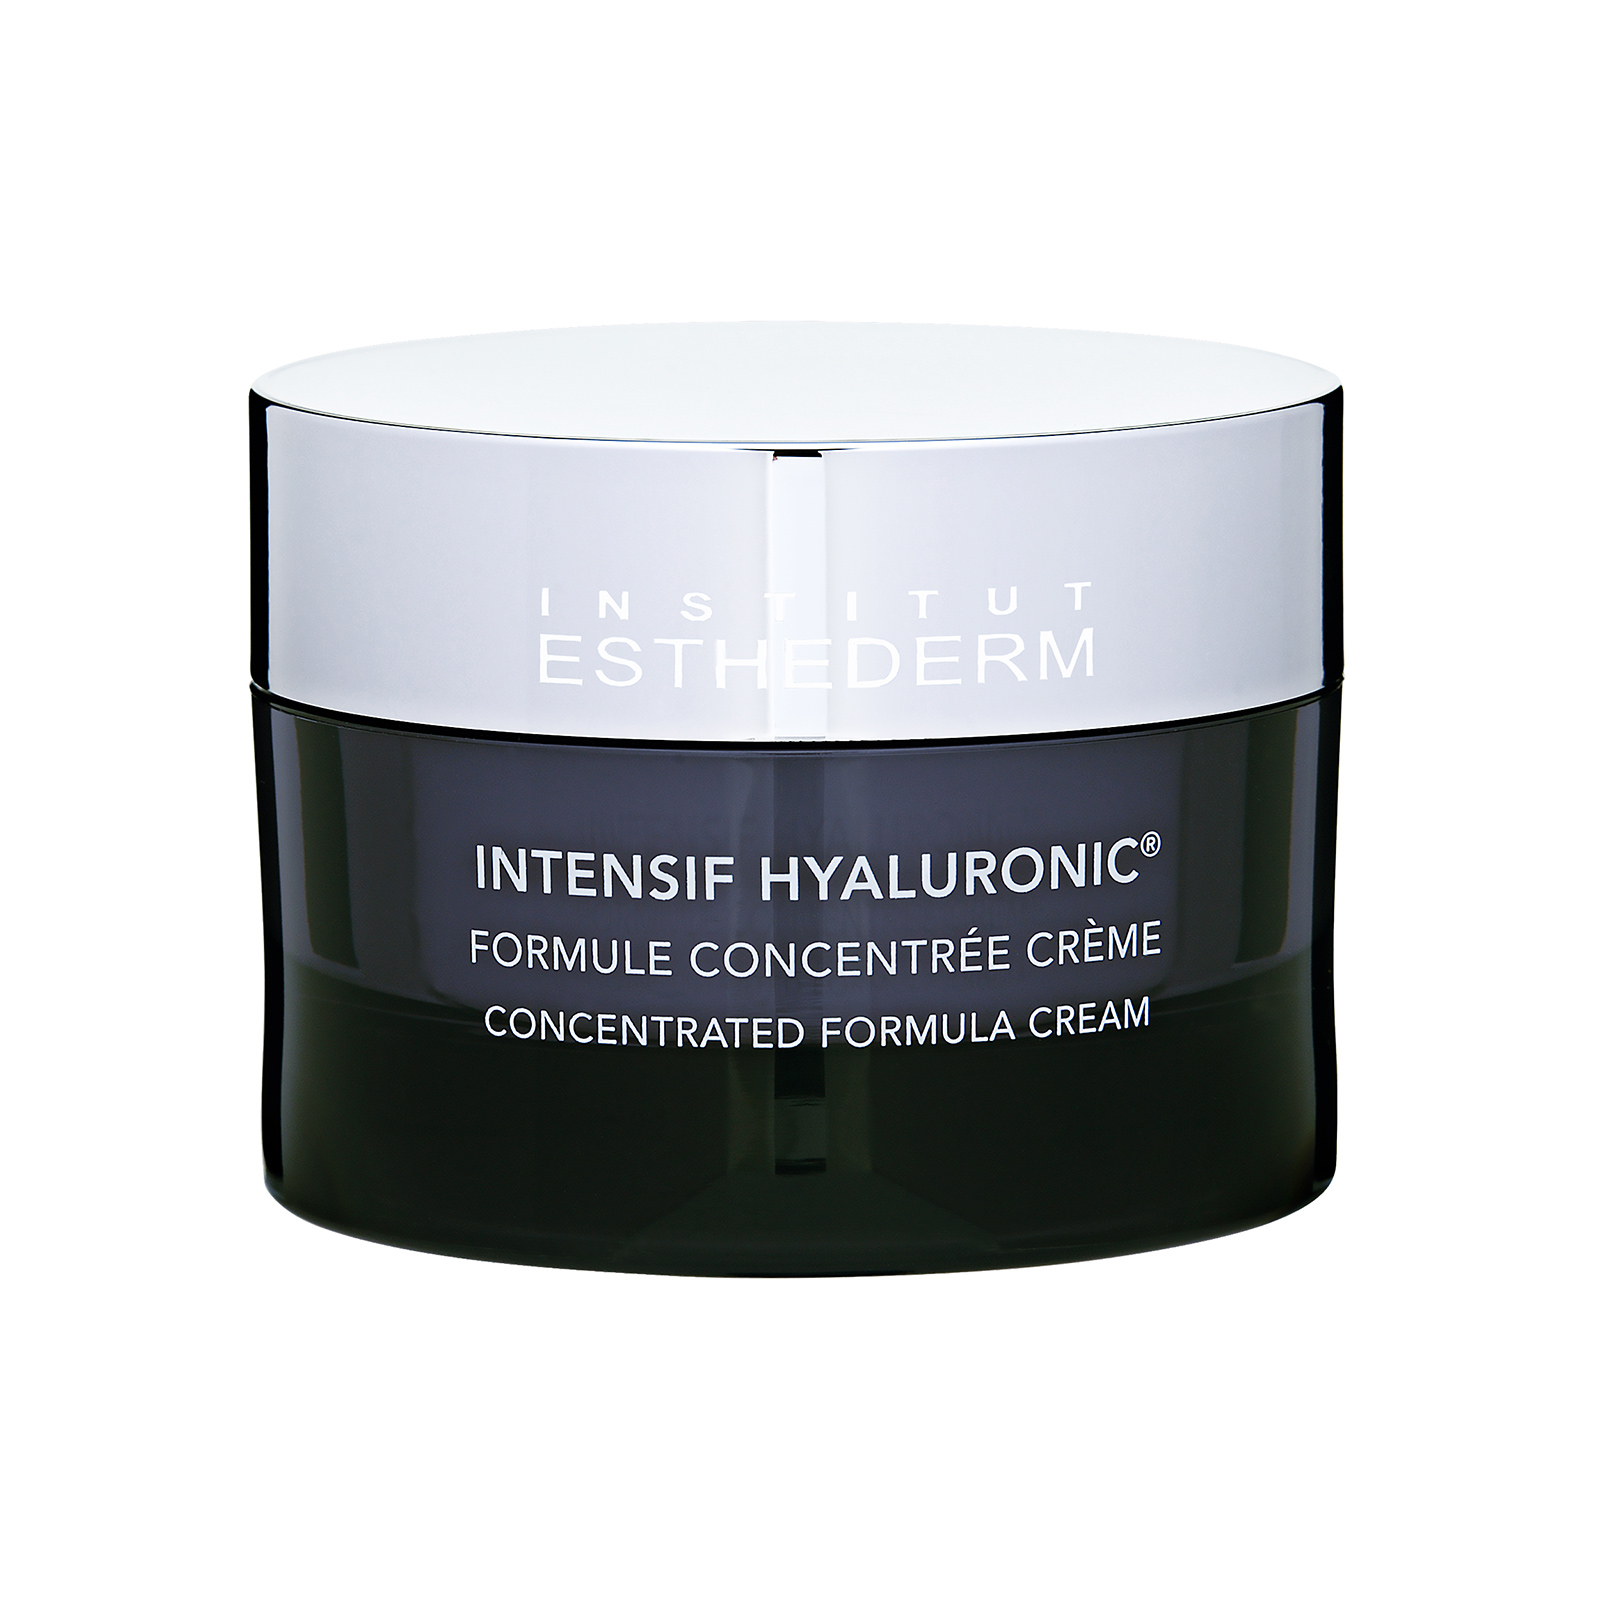 Institut Esthederm Intensif Hyaluronic Concentrated Formula Cream 1.7oz, 50ml